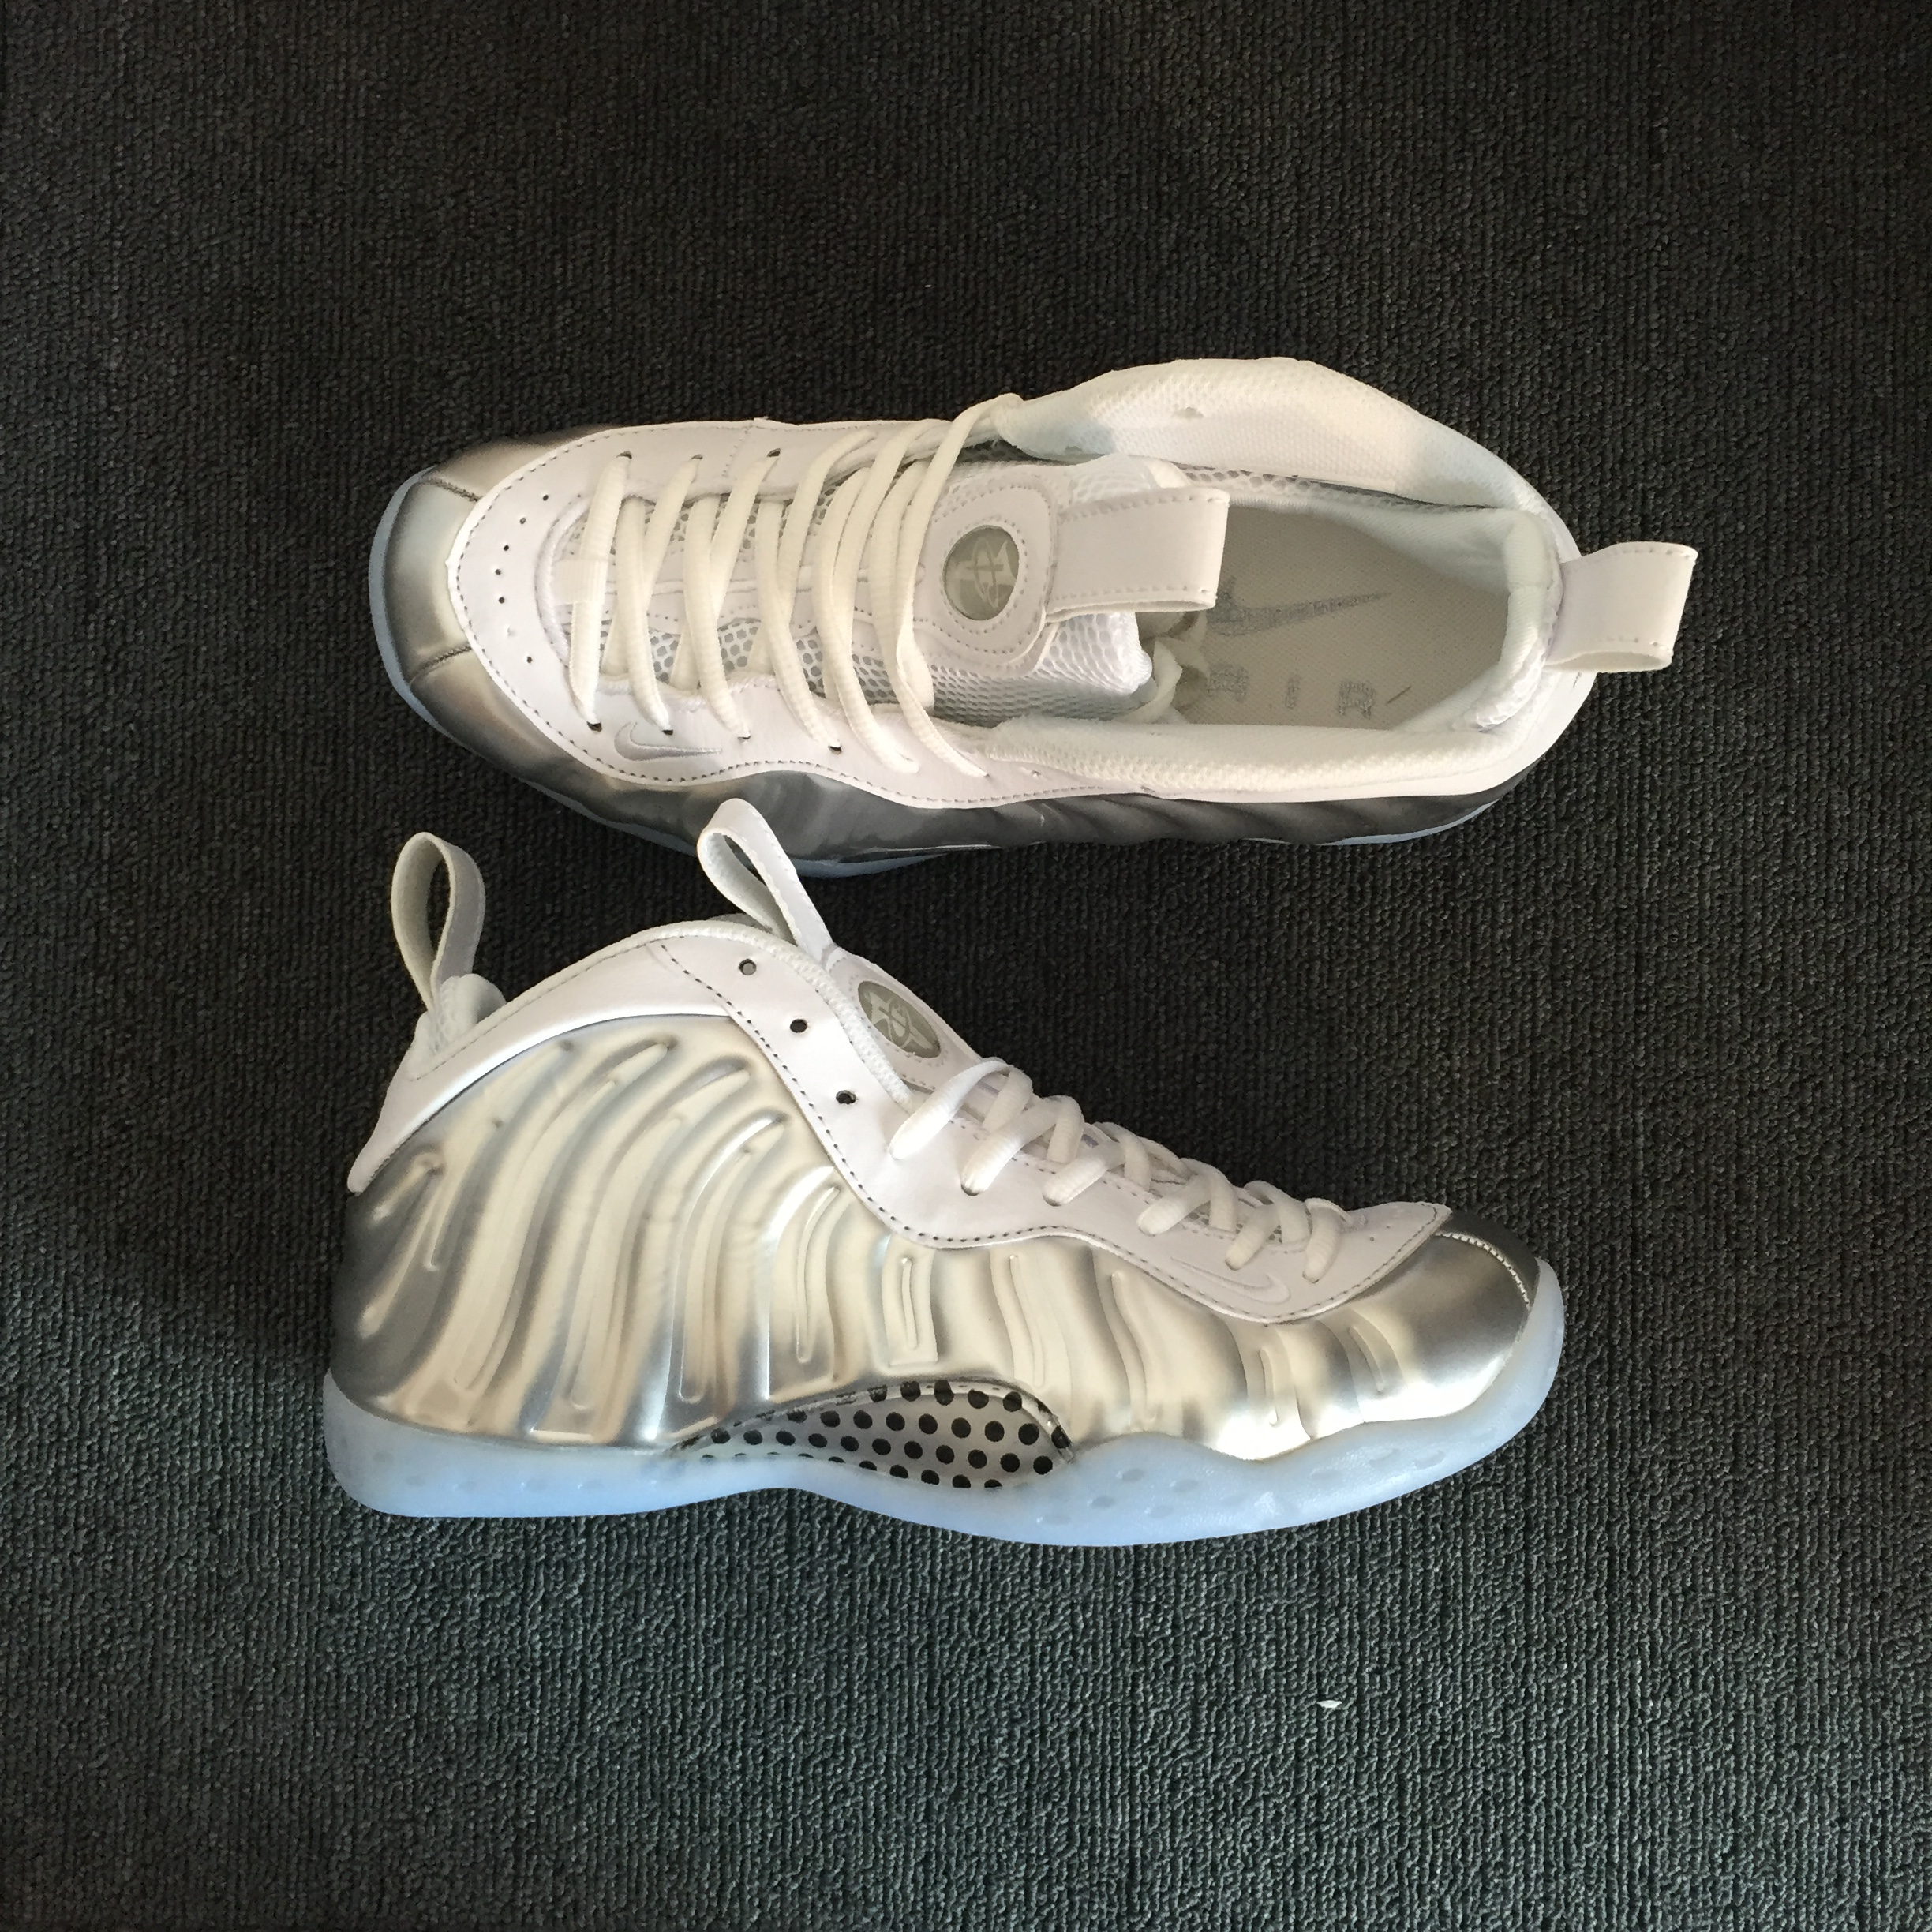 Nike Air Foamposite Pro White Silver Blue Sole Shoes